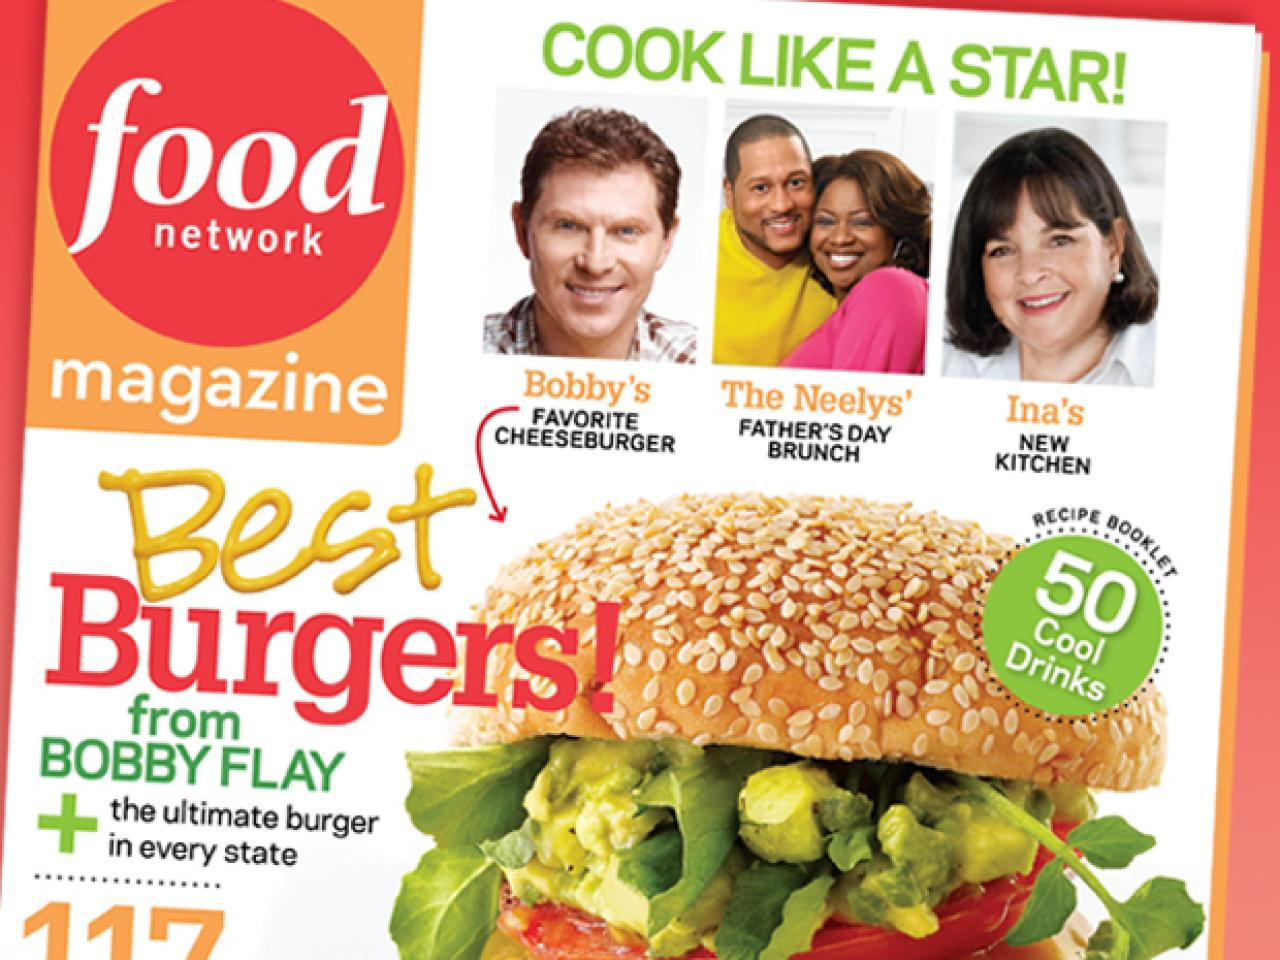 food network magazine june july 2009 recipe index recipes and